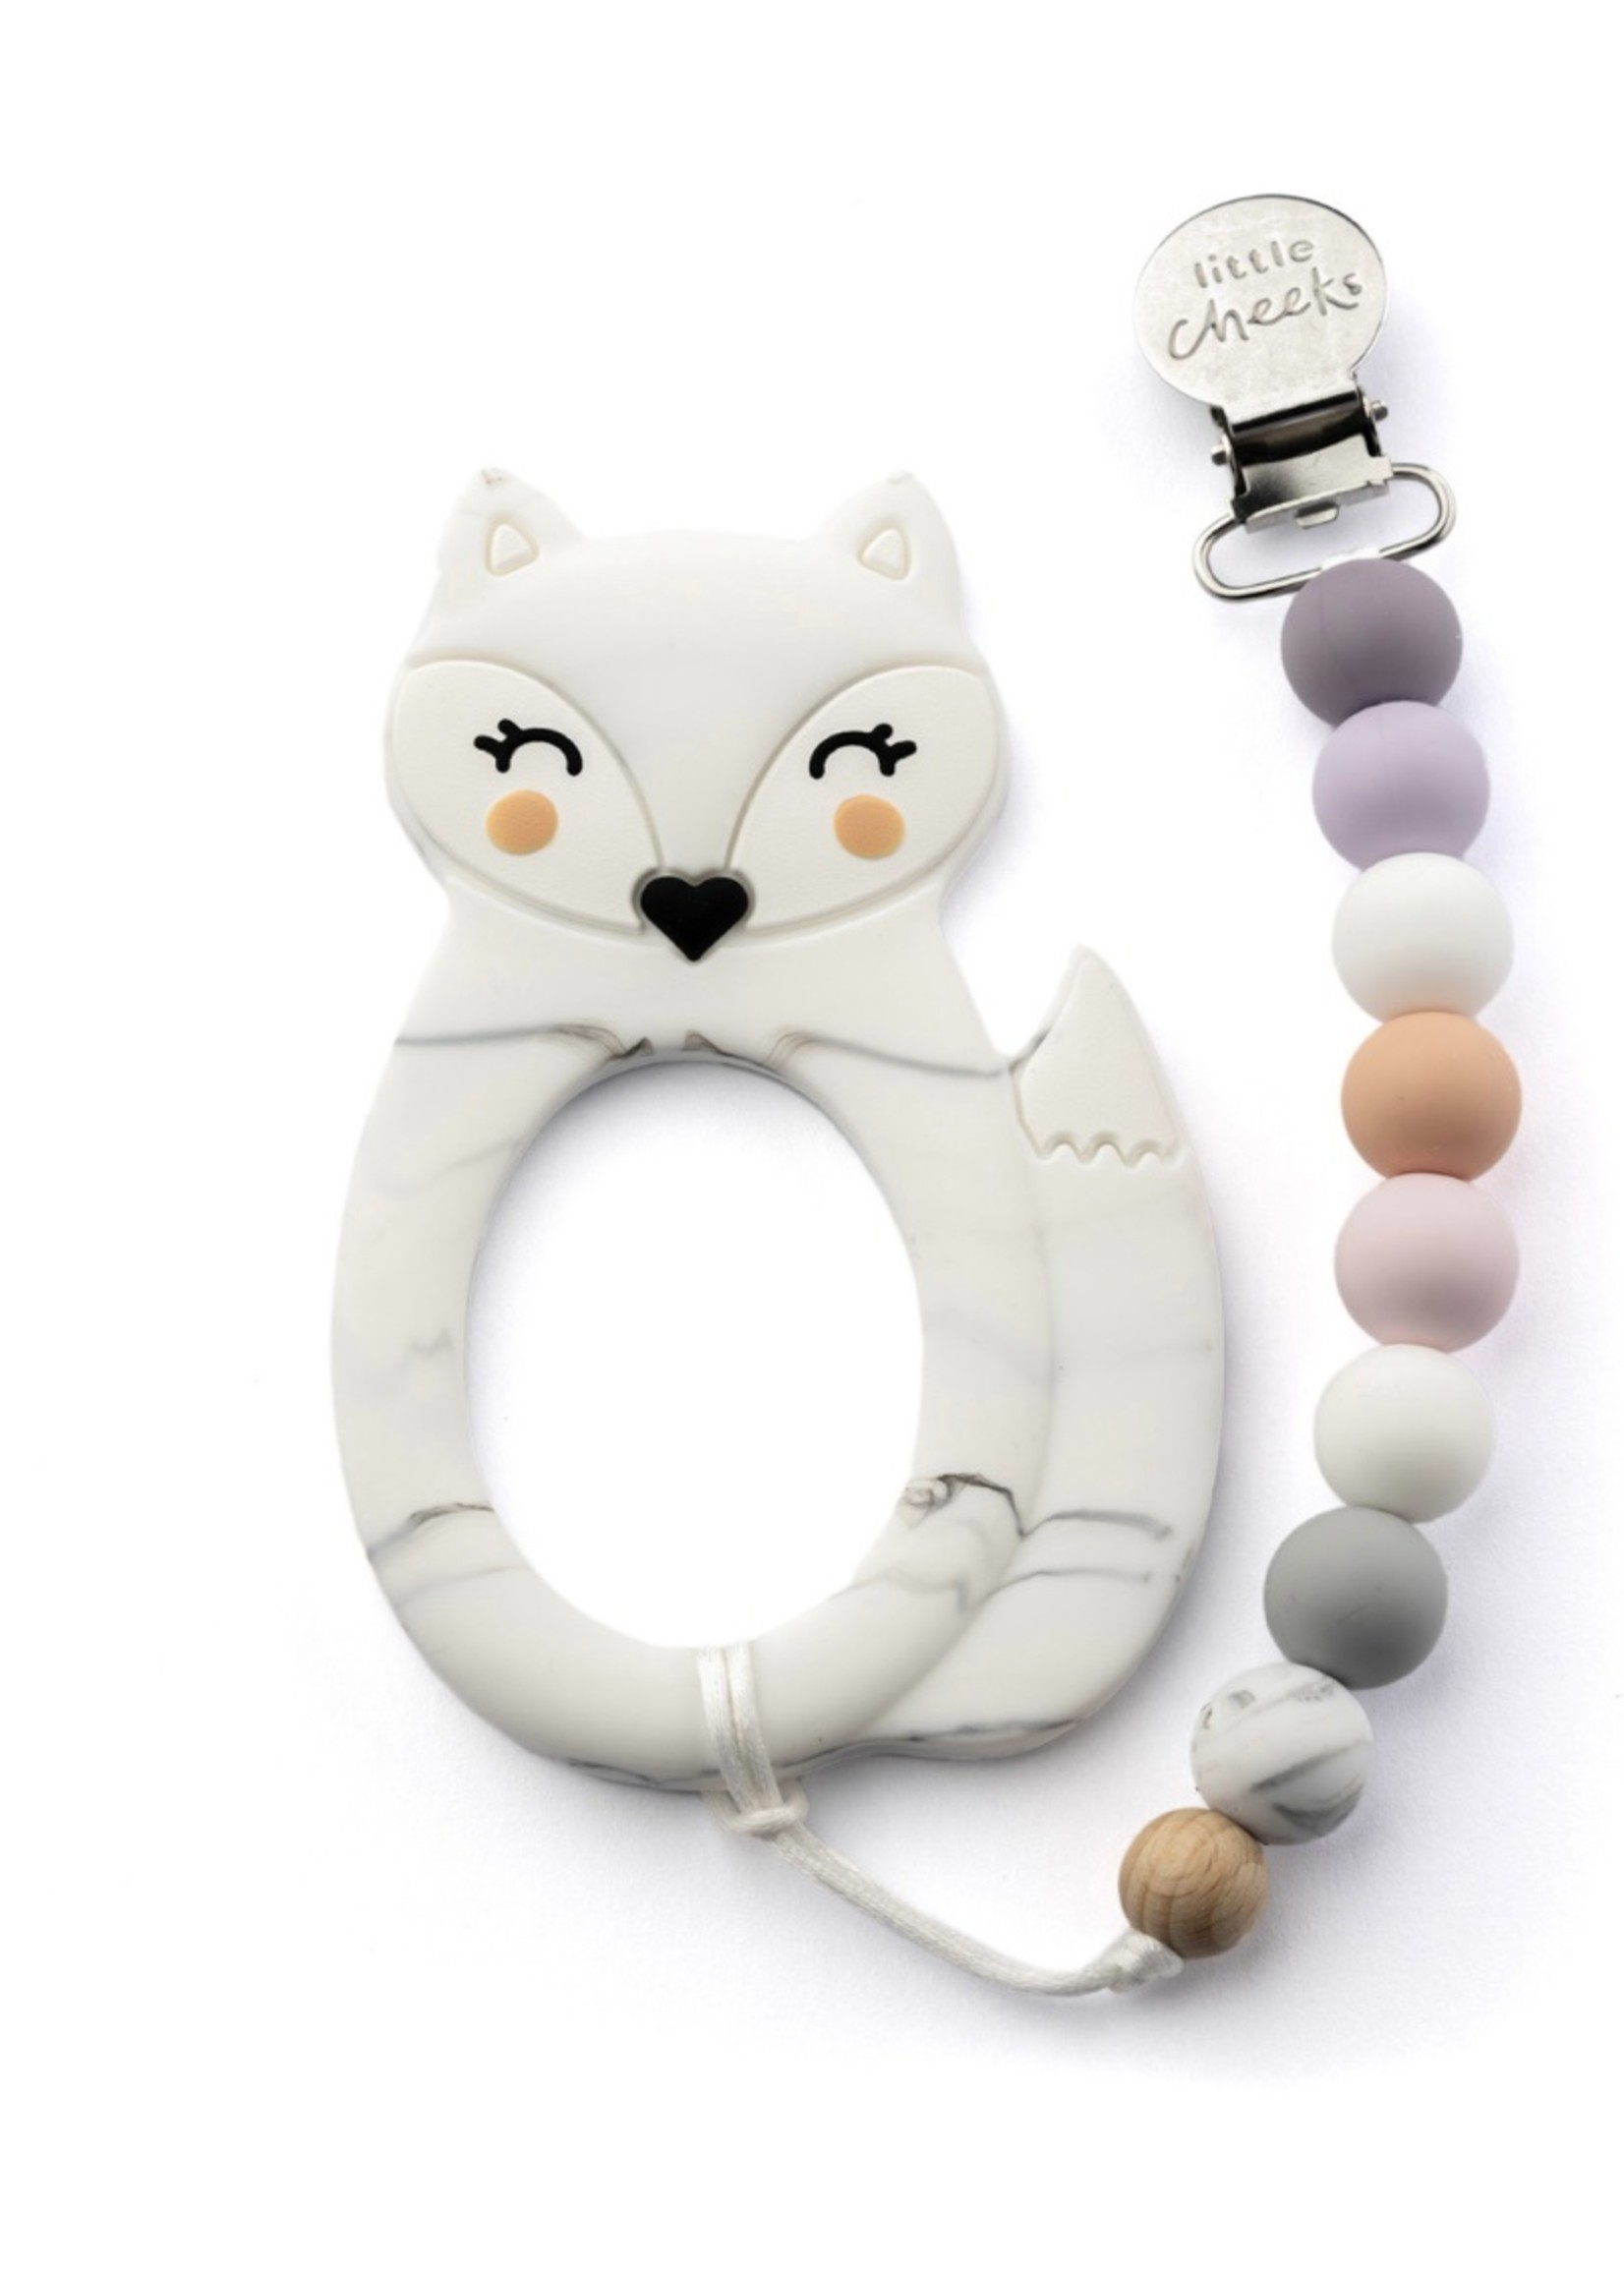 LITTLE CHEEKS Marble Fox TEETHER & CLIP